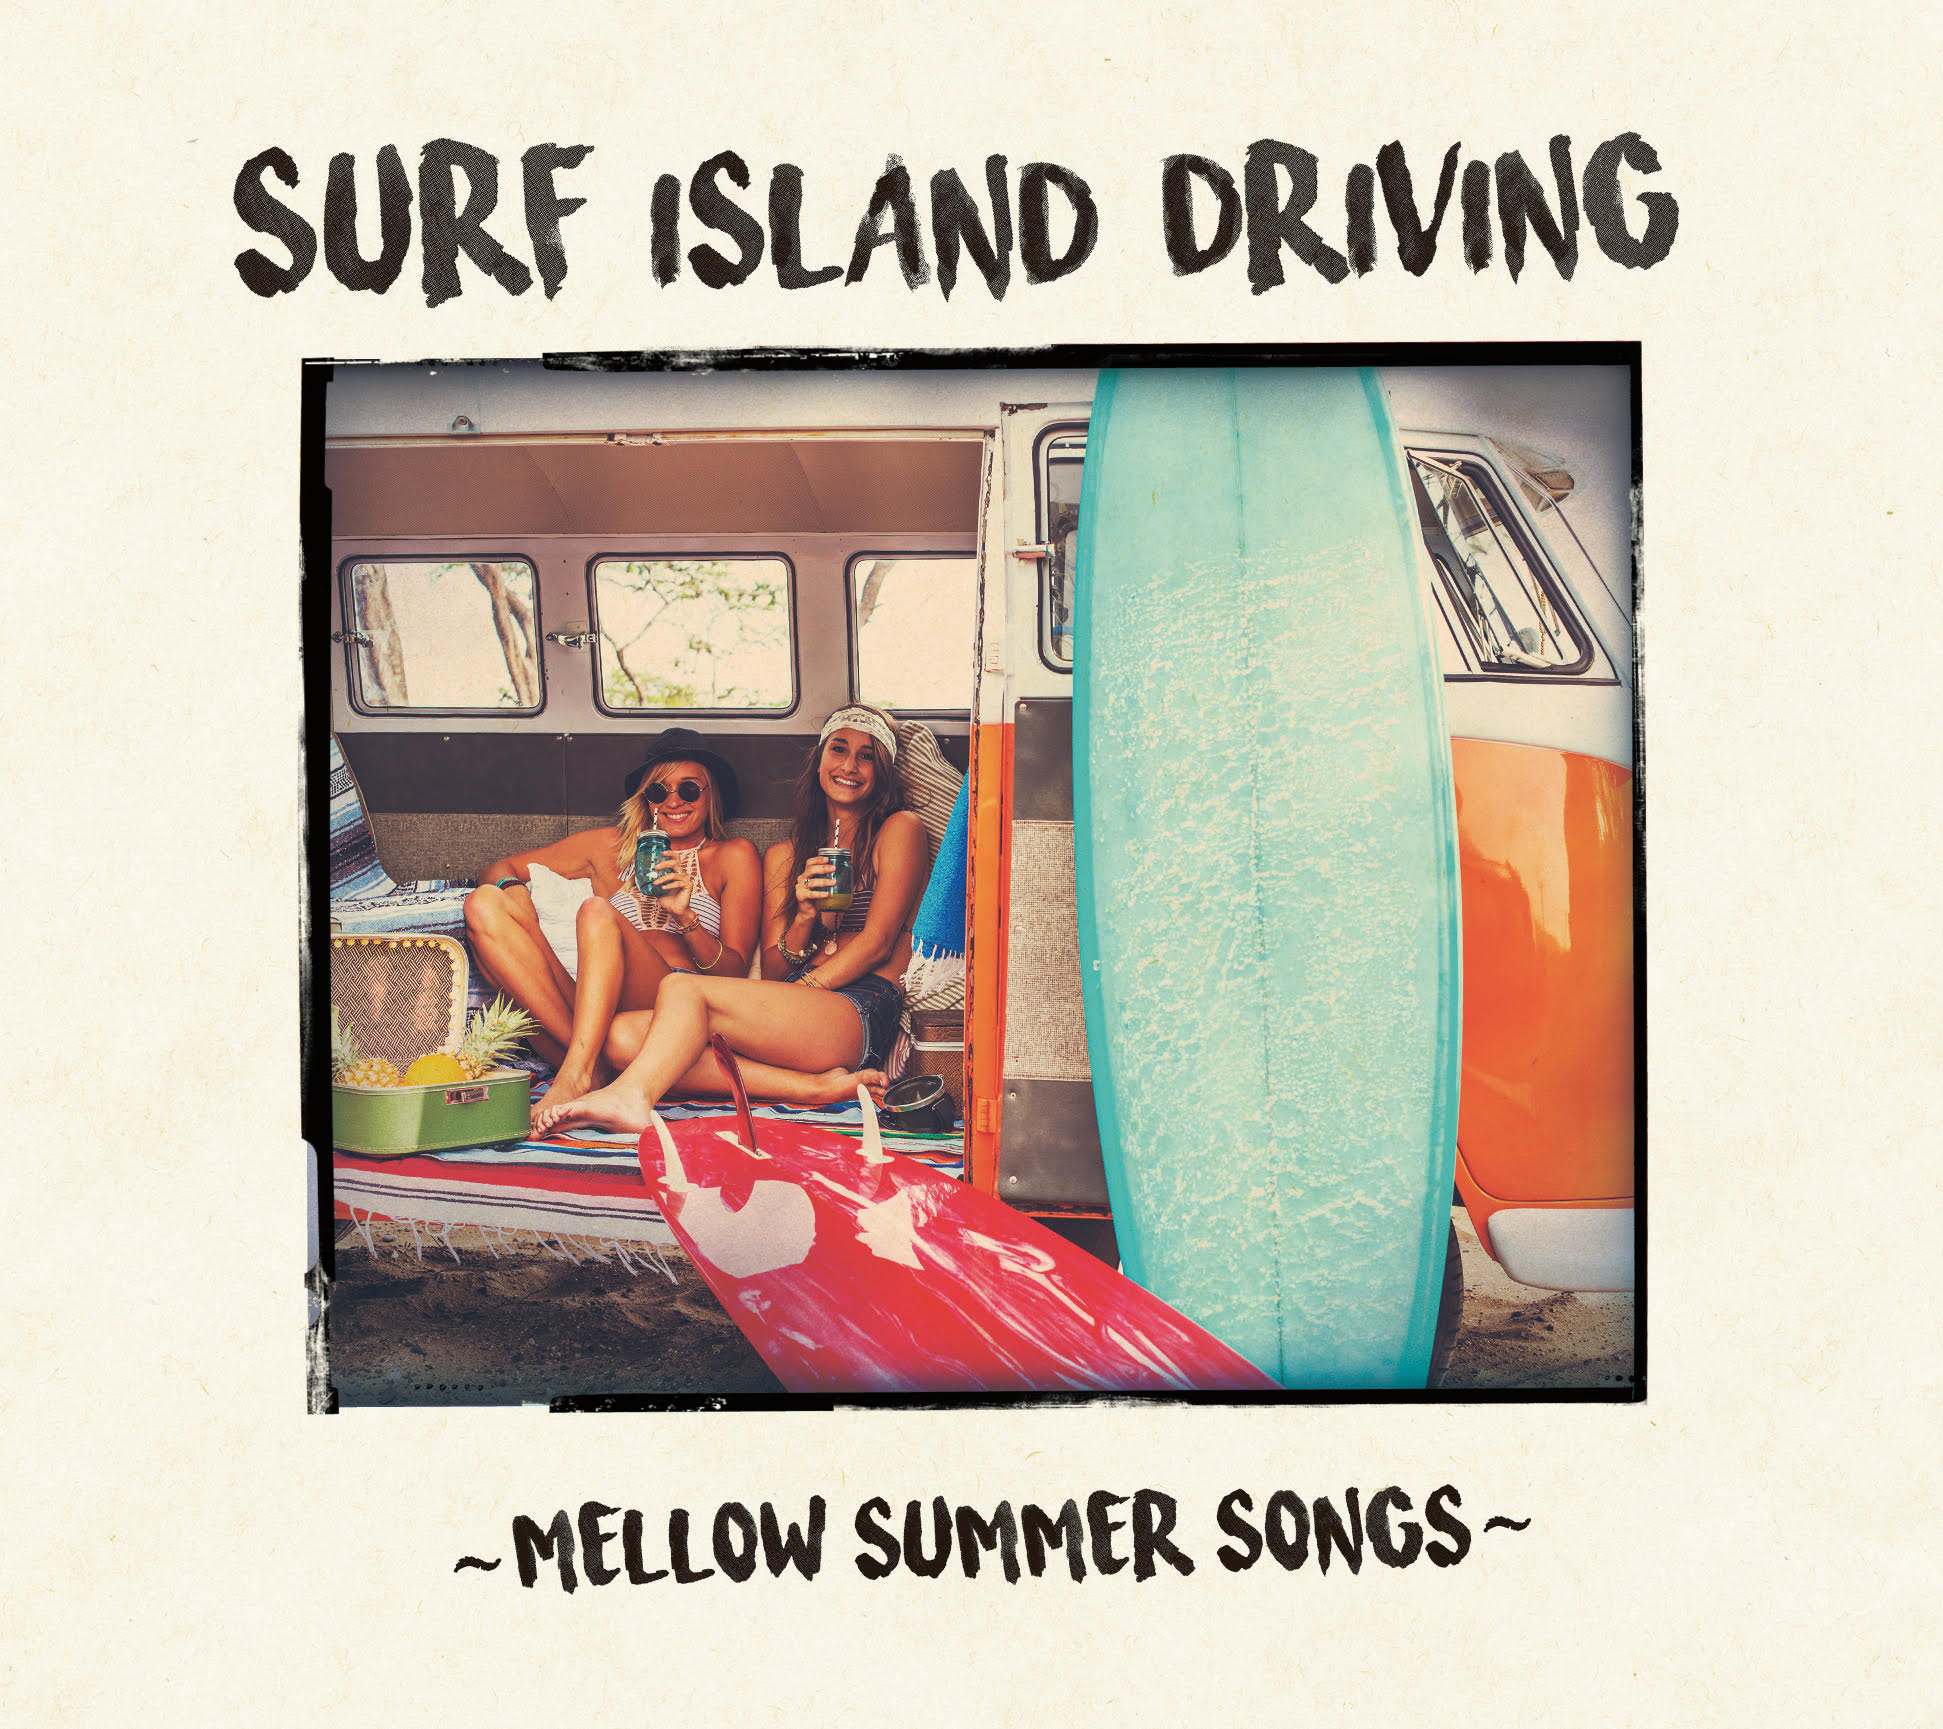 V.A_SURF ISLAND DRIVING ~MELLOW SUMMER SONGS~